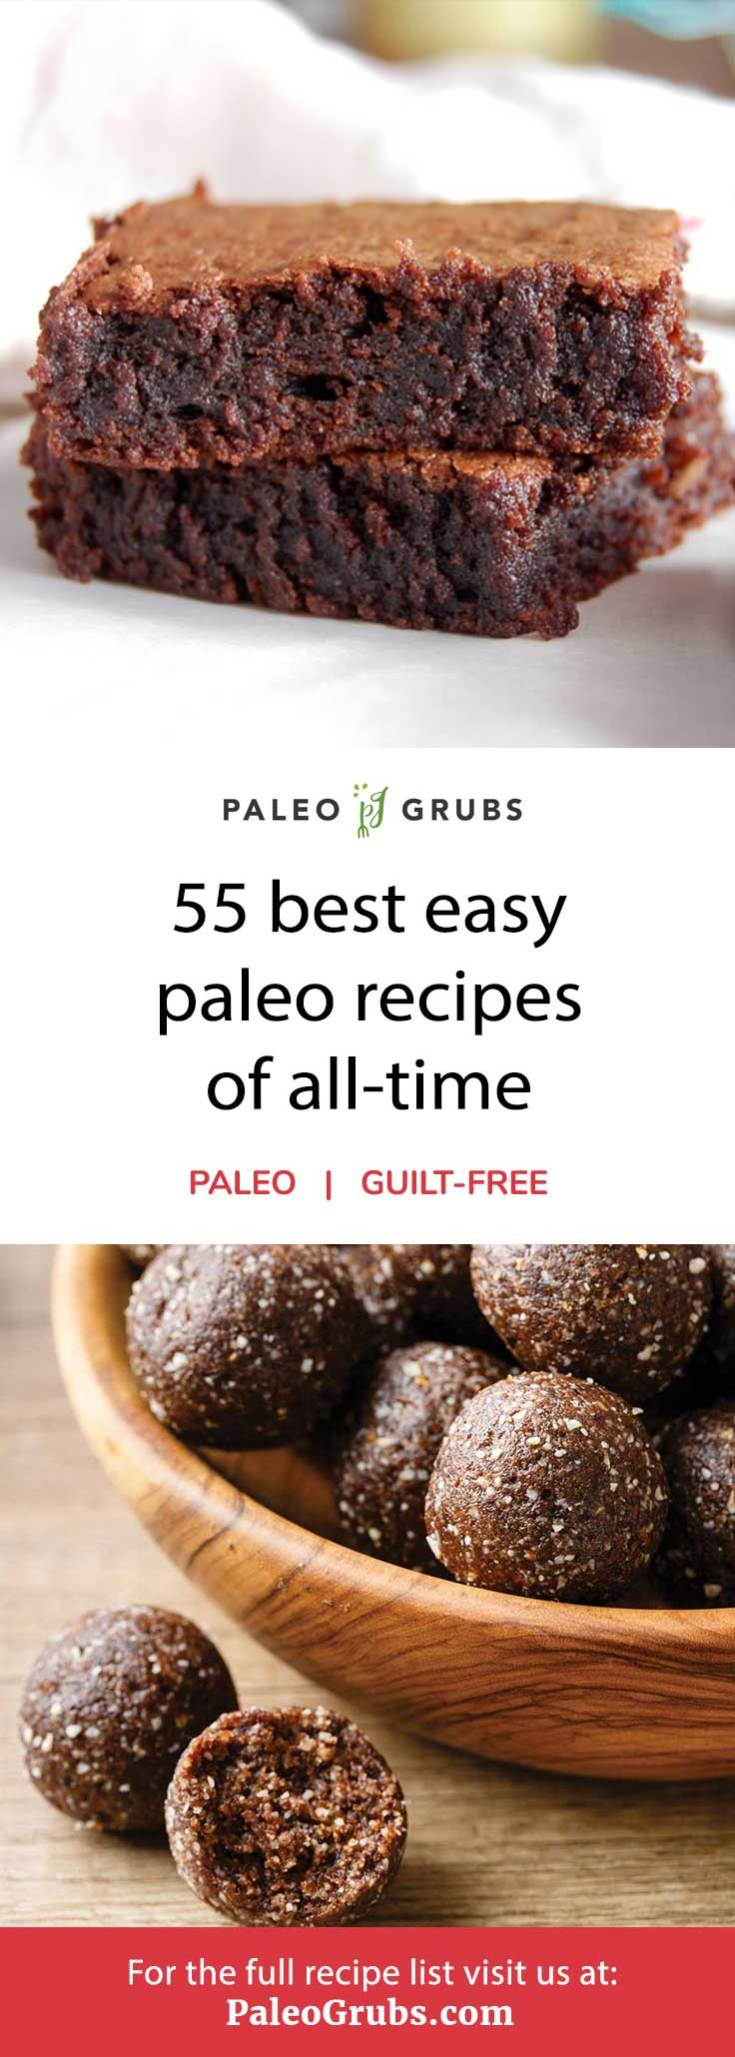 55 Easy Paleo Recipes- the best dinners, breakfasts, desserts and snacks.